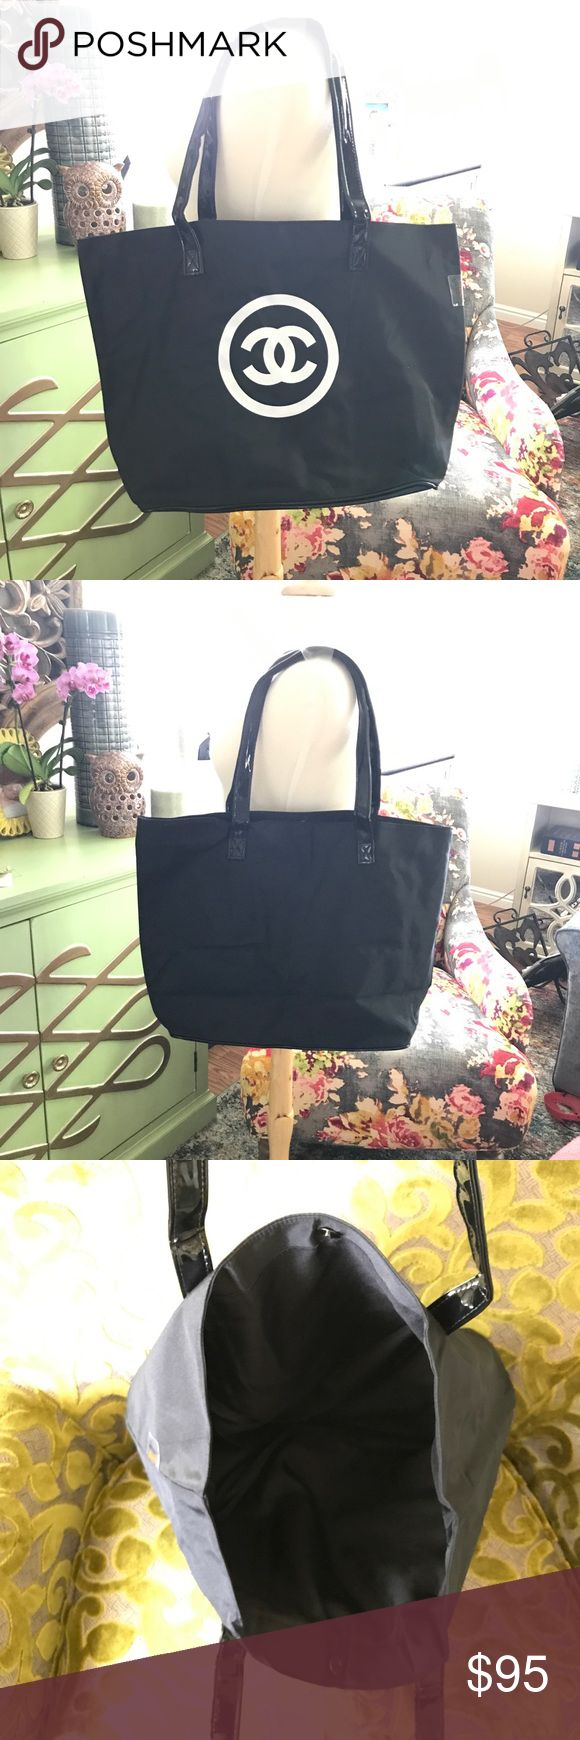 SALE‼️ Chanel shopping tote New with original packaging. Gift with purchase item   This is a great bag and sturdy! Perfect for running errands, a overnight bag, pool beach tote, dance bag, you name it!   LabelsinLove.Storenvy.com  Sign up through my page and use code LOVE15 at checkout for 15% off! Must sign up as a new member through my specific page to get the discount 😊💕✌️ CHANEL Makeup